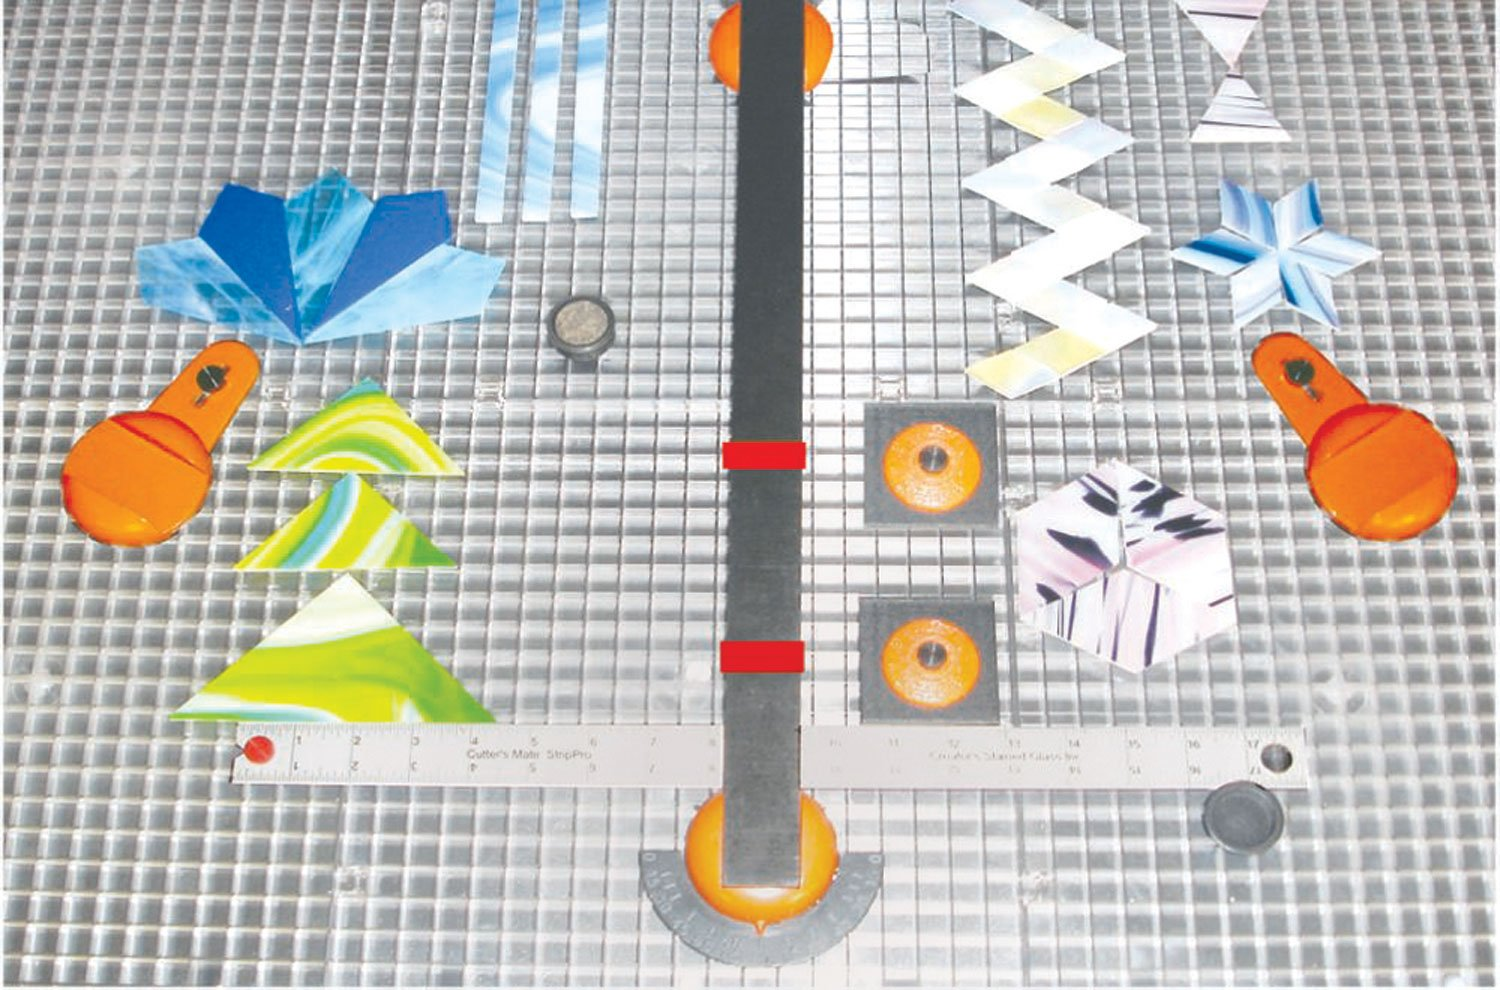 Creator's Ultra Beetle Bits Glass Cutting System - COMPLETE WITH 6-Pack Waffle Grids and Push Button Flying Beetle Glass Cutter INCLUDED - Made In The USA by Creator's (Image #7)